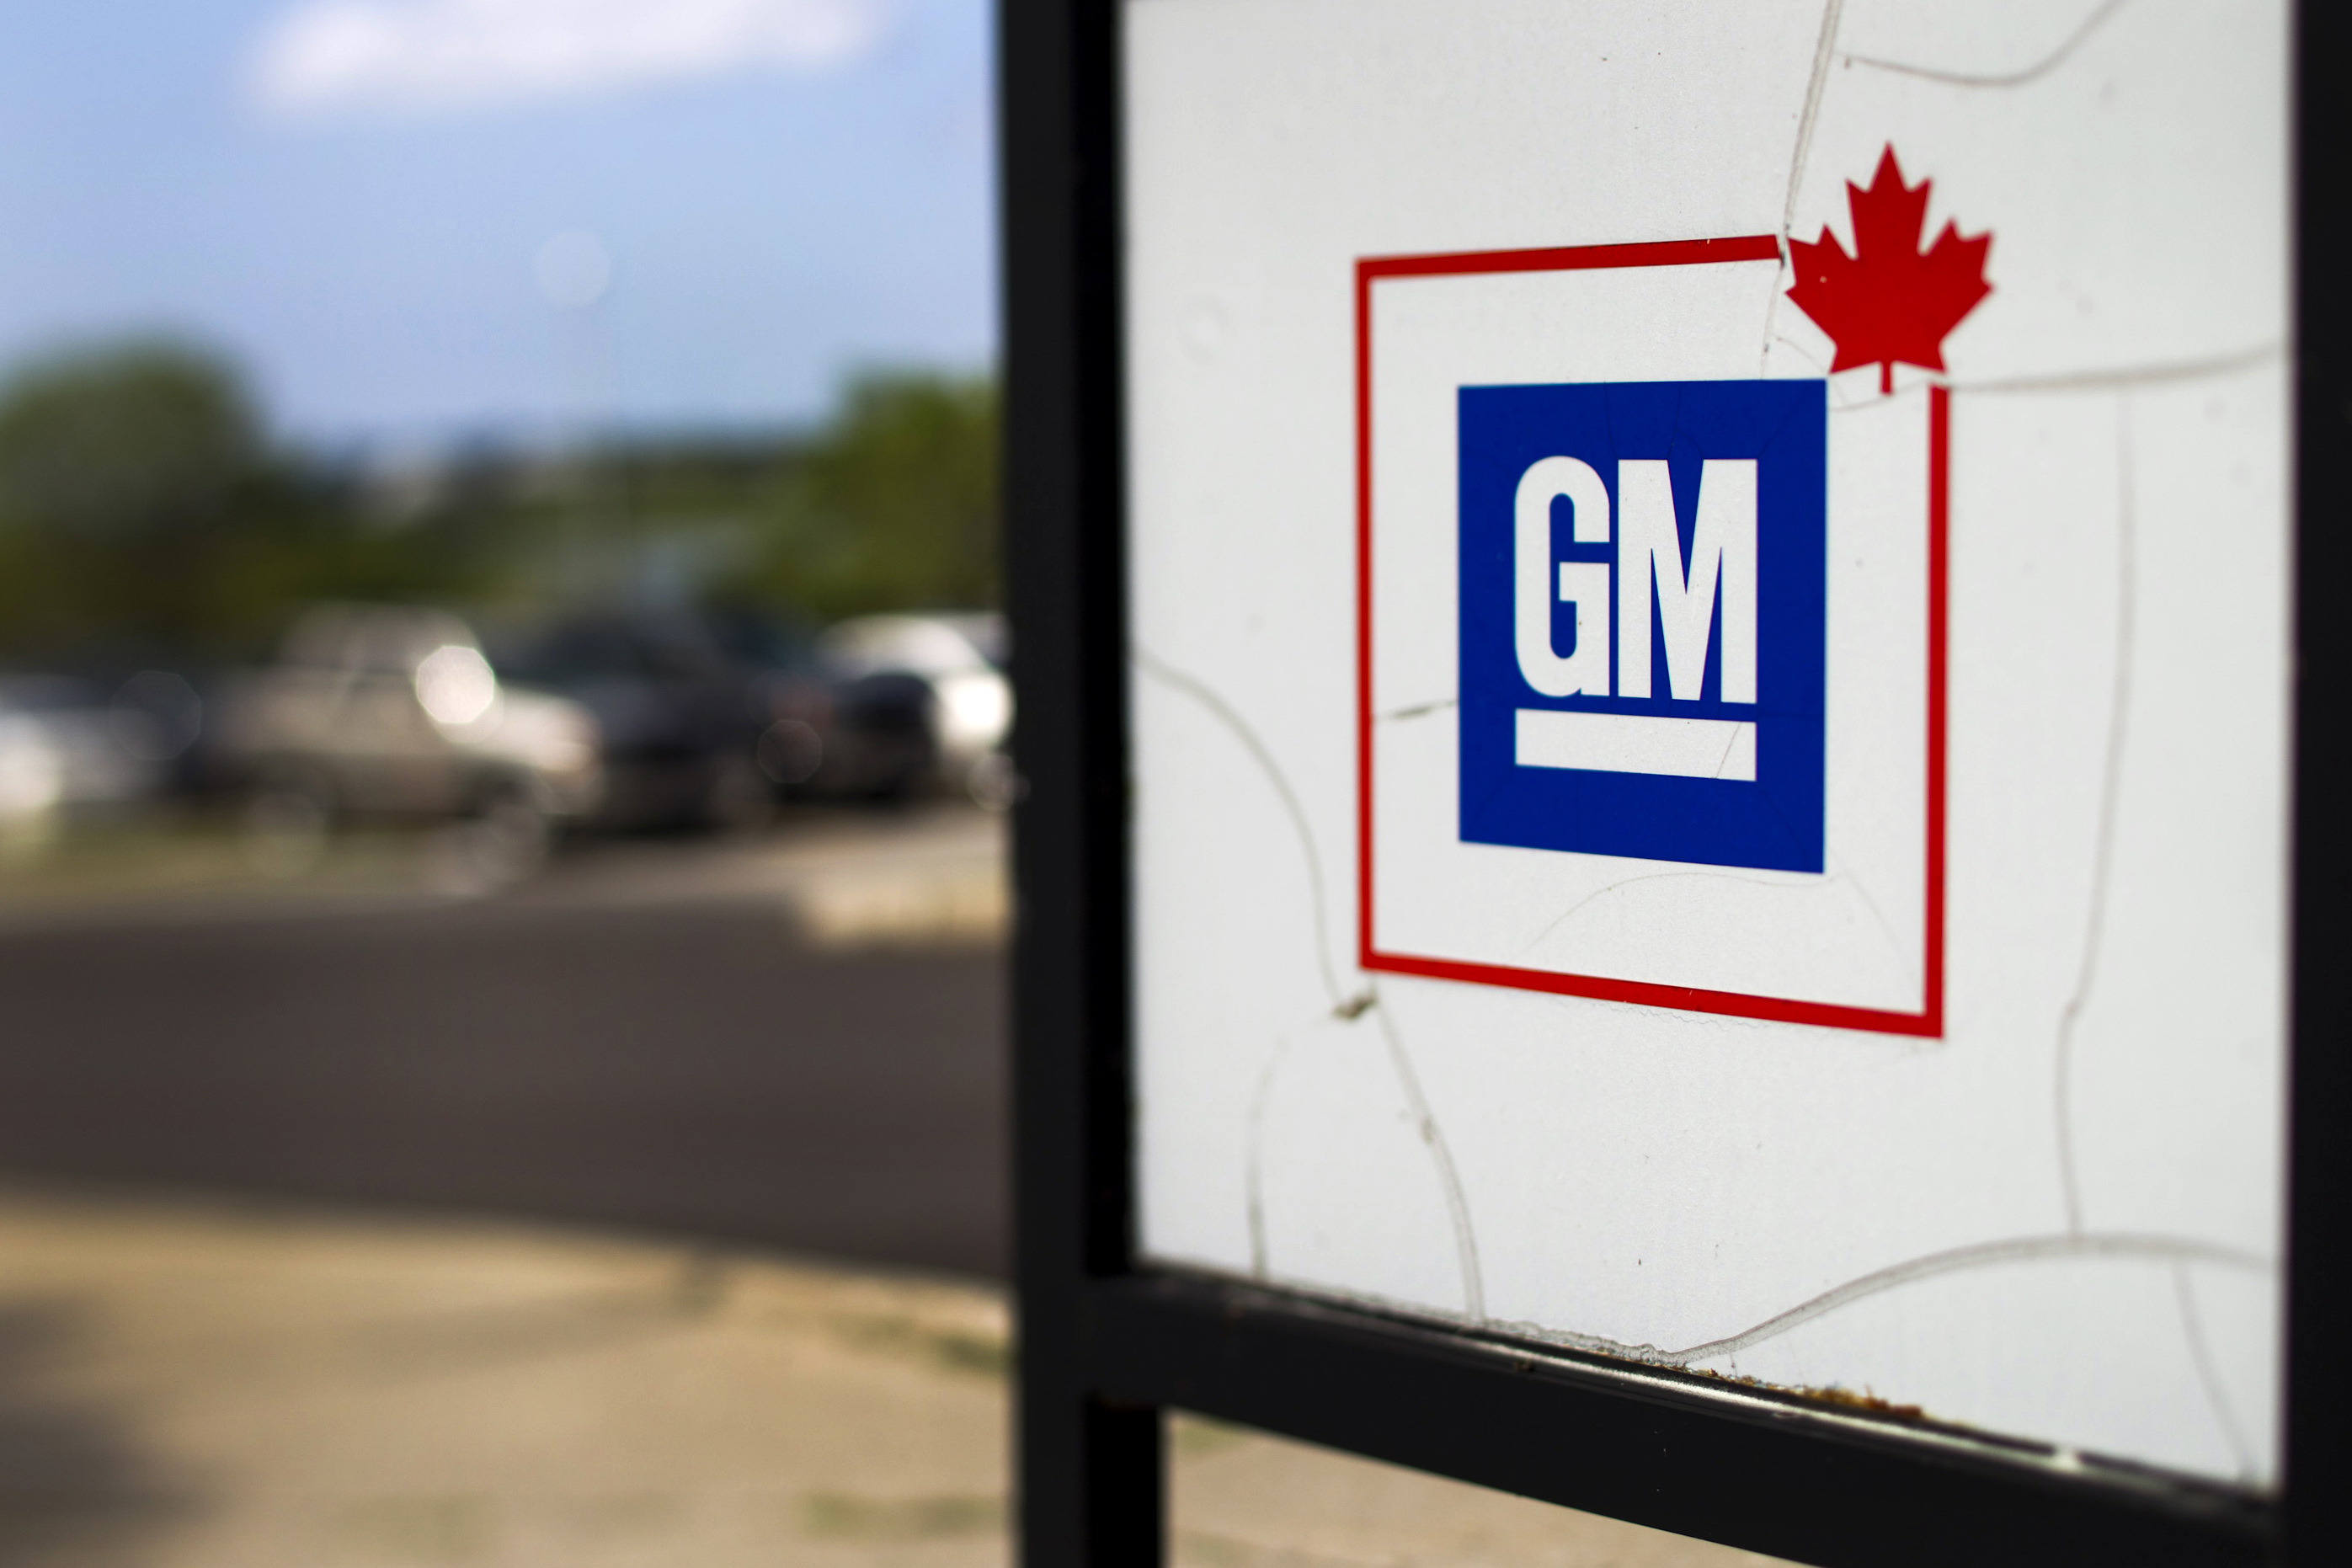 Gm Workers Ratify New Agreement With Auto Giant 680 News